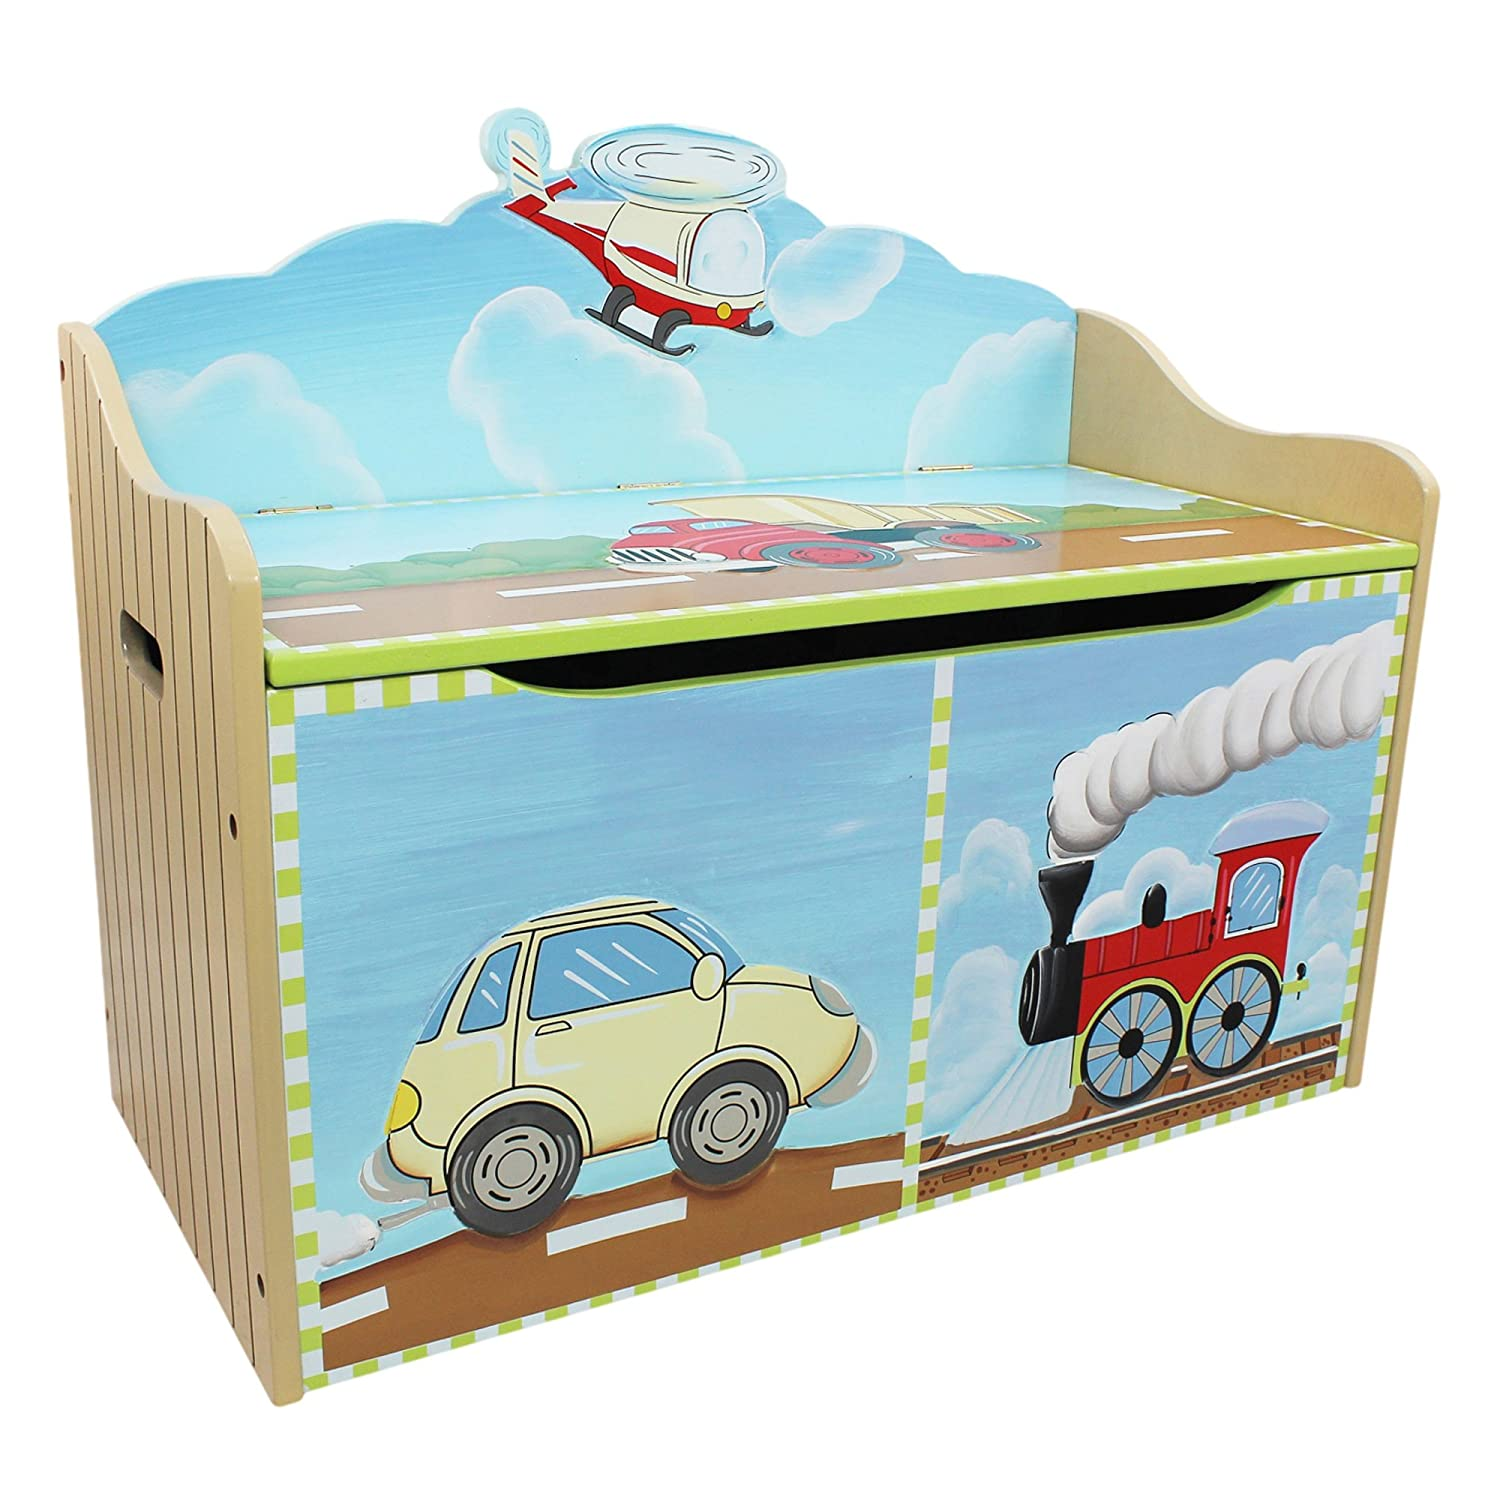 Kids wooden toy chest sunny safari - Amazon Com Fantasy Fields Transportation Thematic Kids Wooden Toy Chest With Safety Hinges Imagination Inspiring Hand Crafted Hand Painted Details